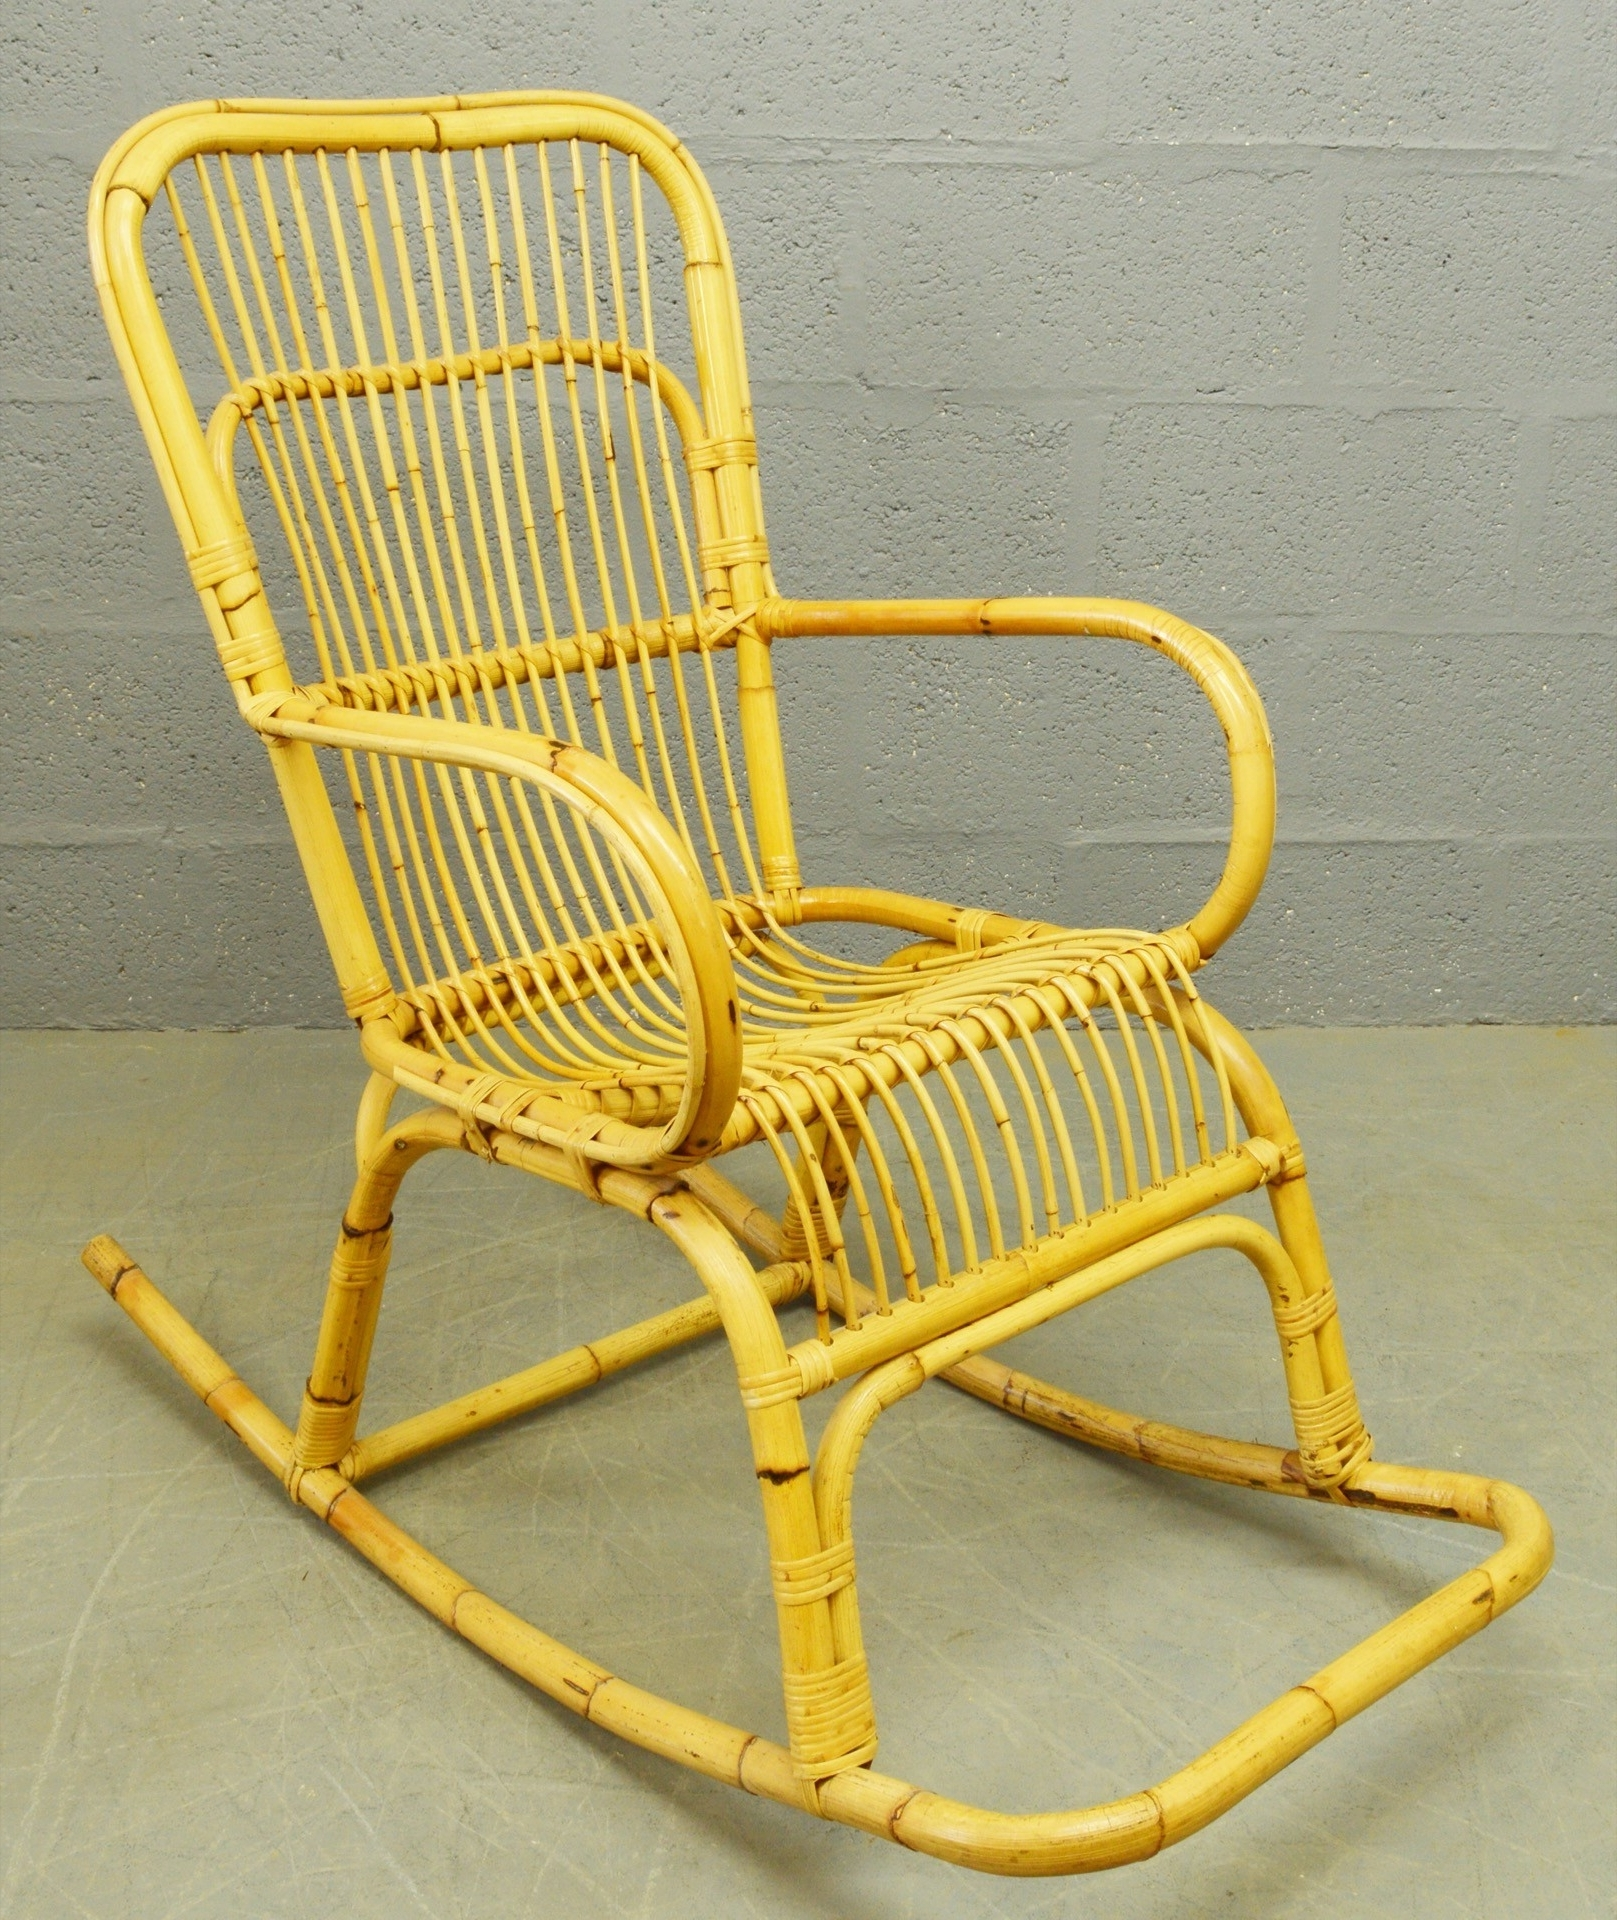 Wicker Rocking Chair With Magazine Holder Regarding 2019 Mid Century Bamboo And Rattan Rocking Chair – 1960S – Design Market (View 20 of 20)